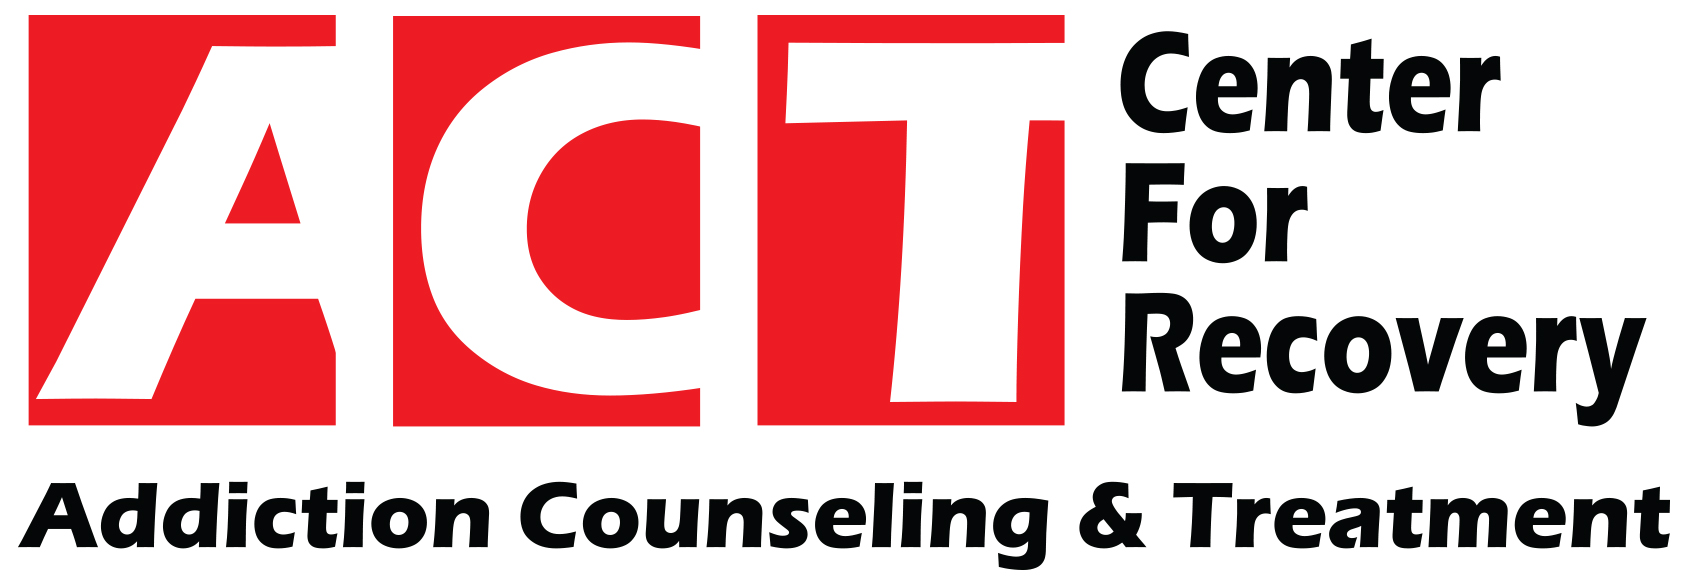 Act Center For Recovery